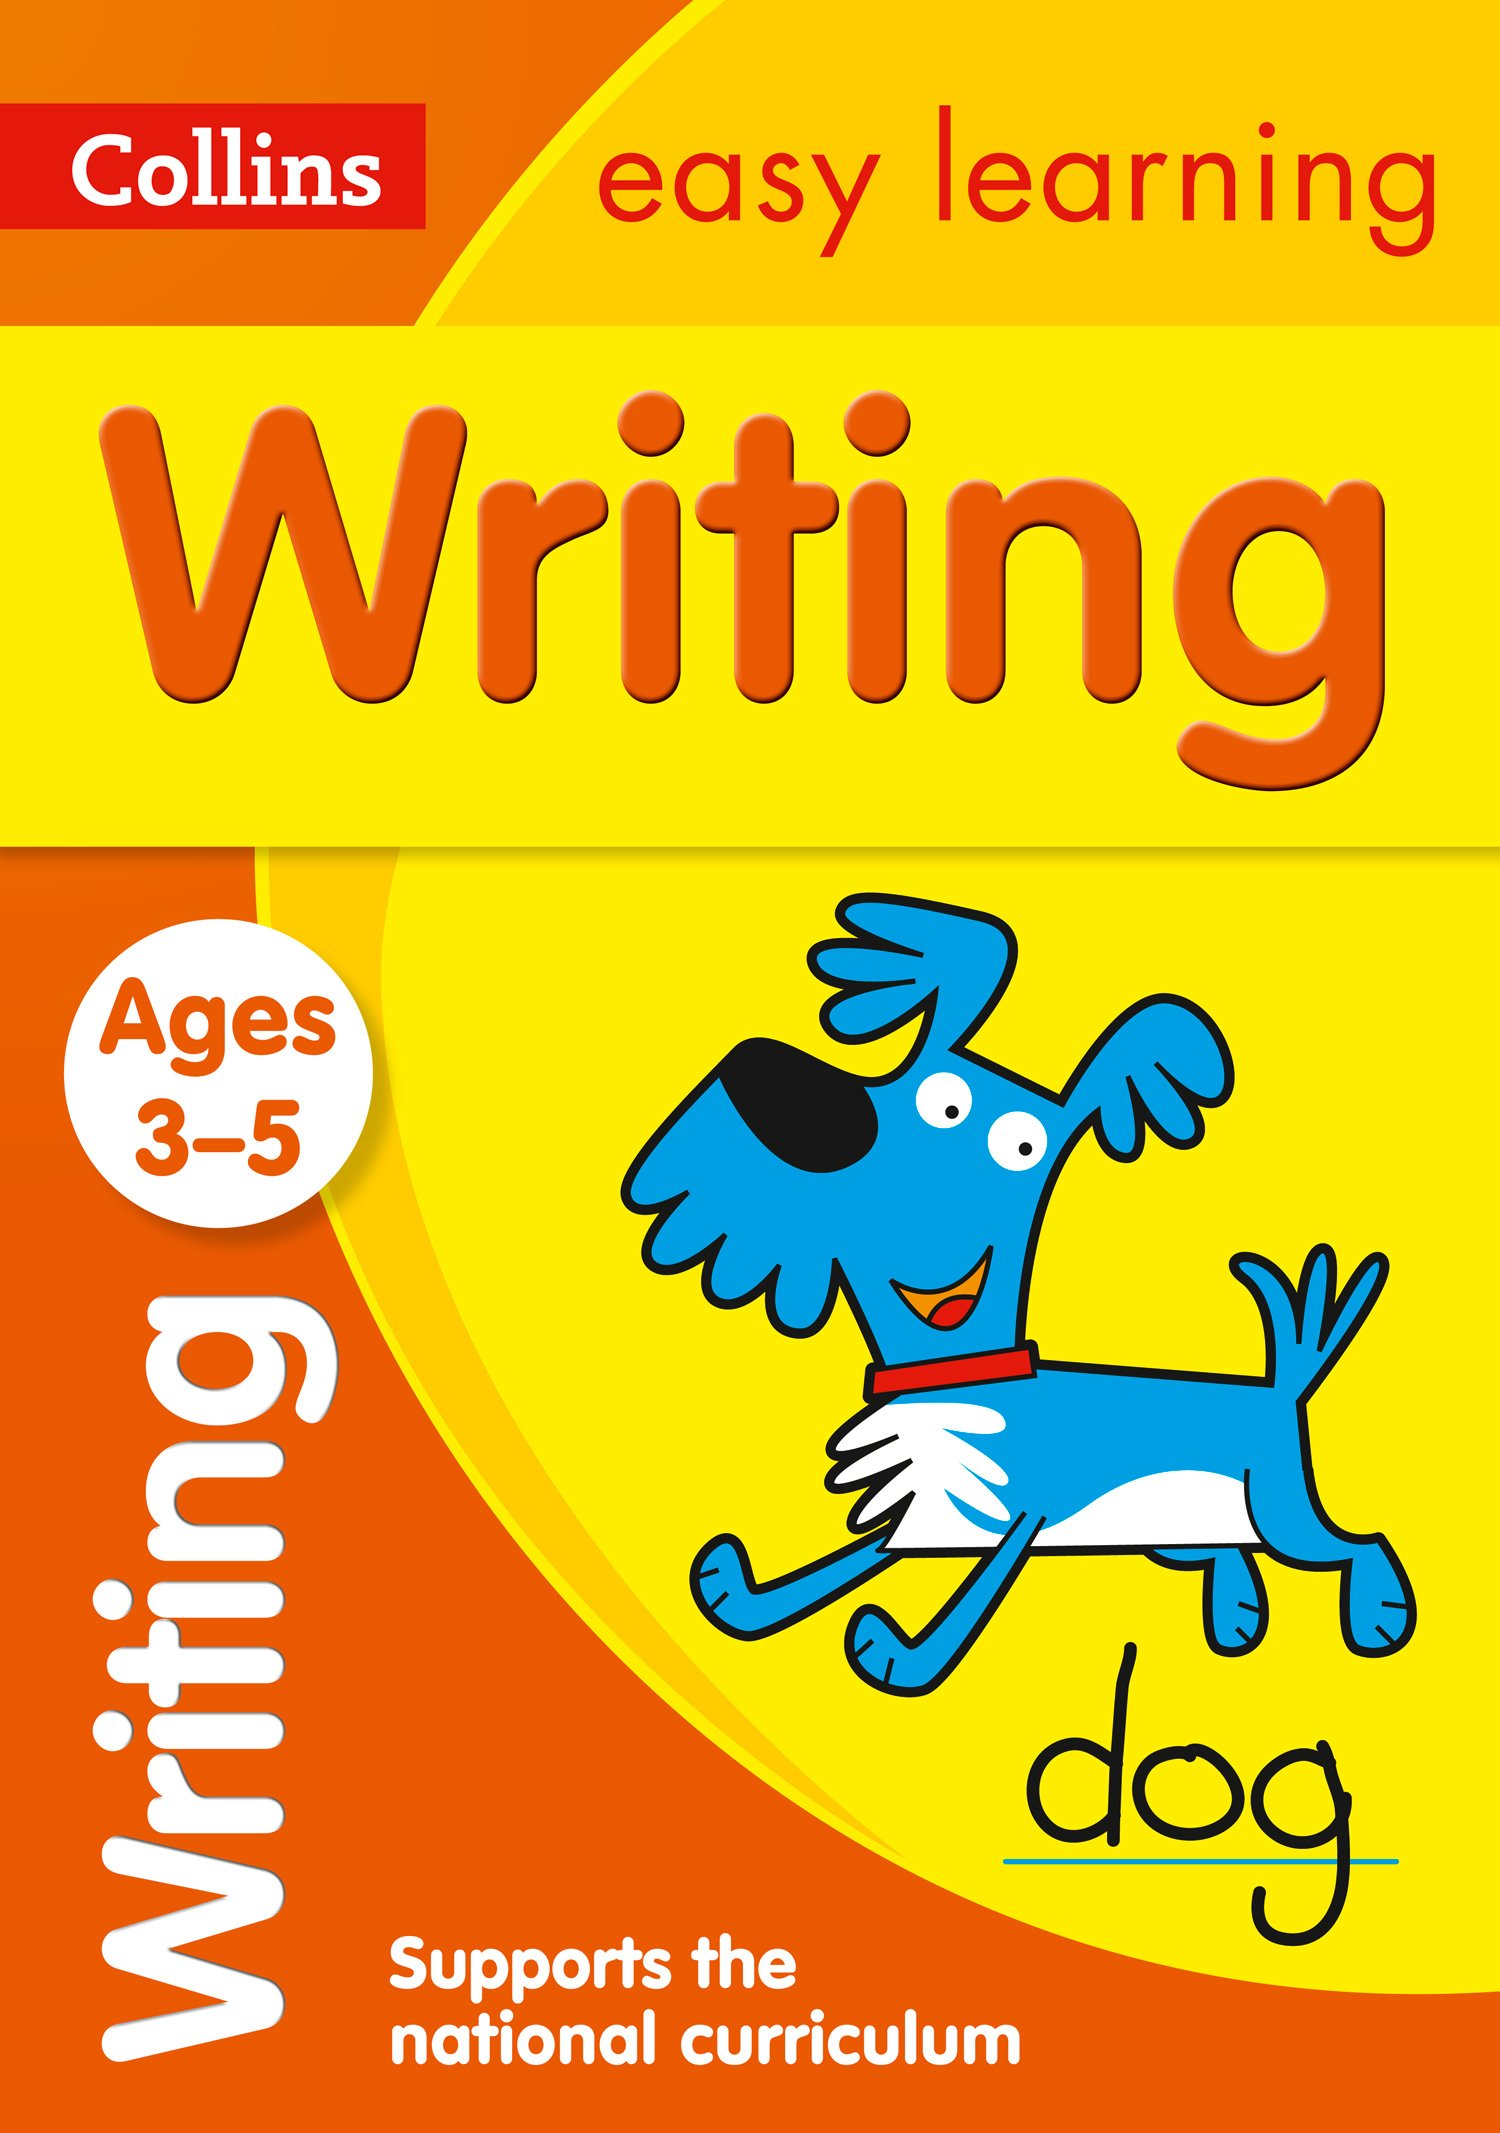 COLLINS EASY LEARNING: WRITING - Ages 3-5 and Supports the National Curriculum